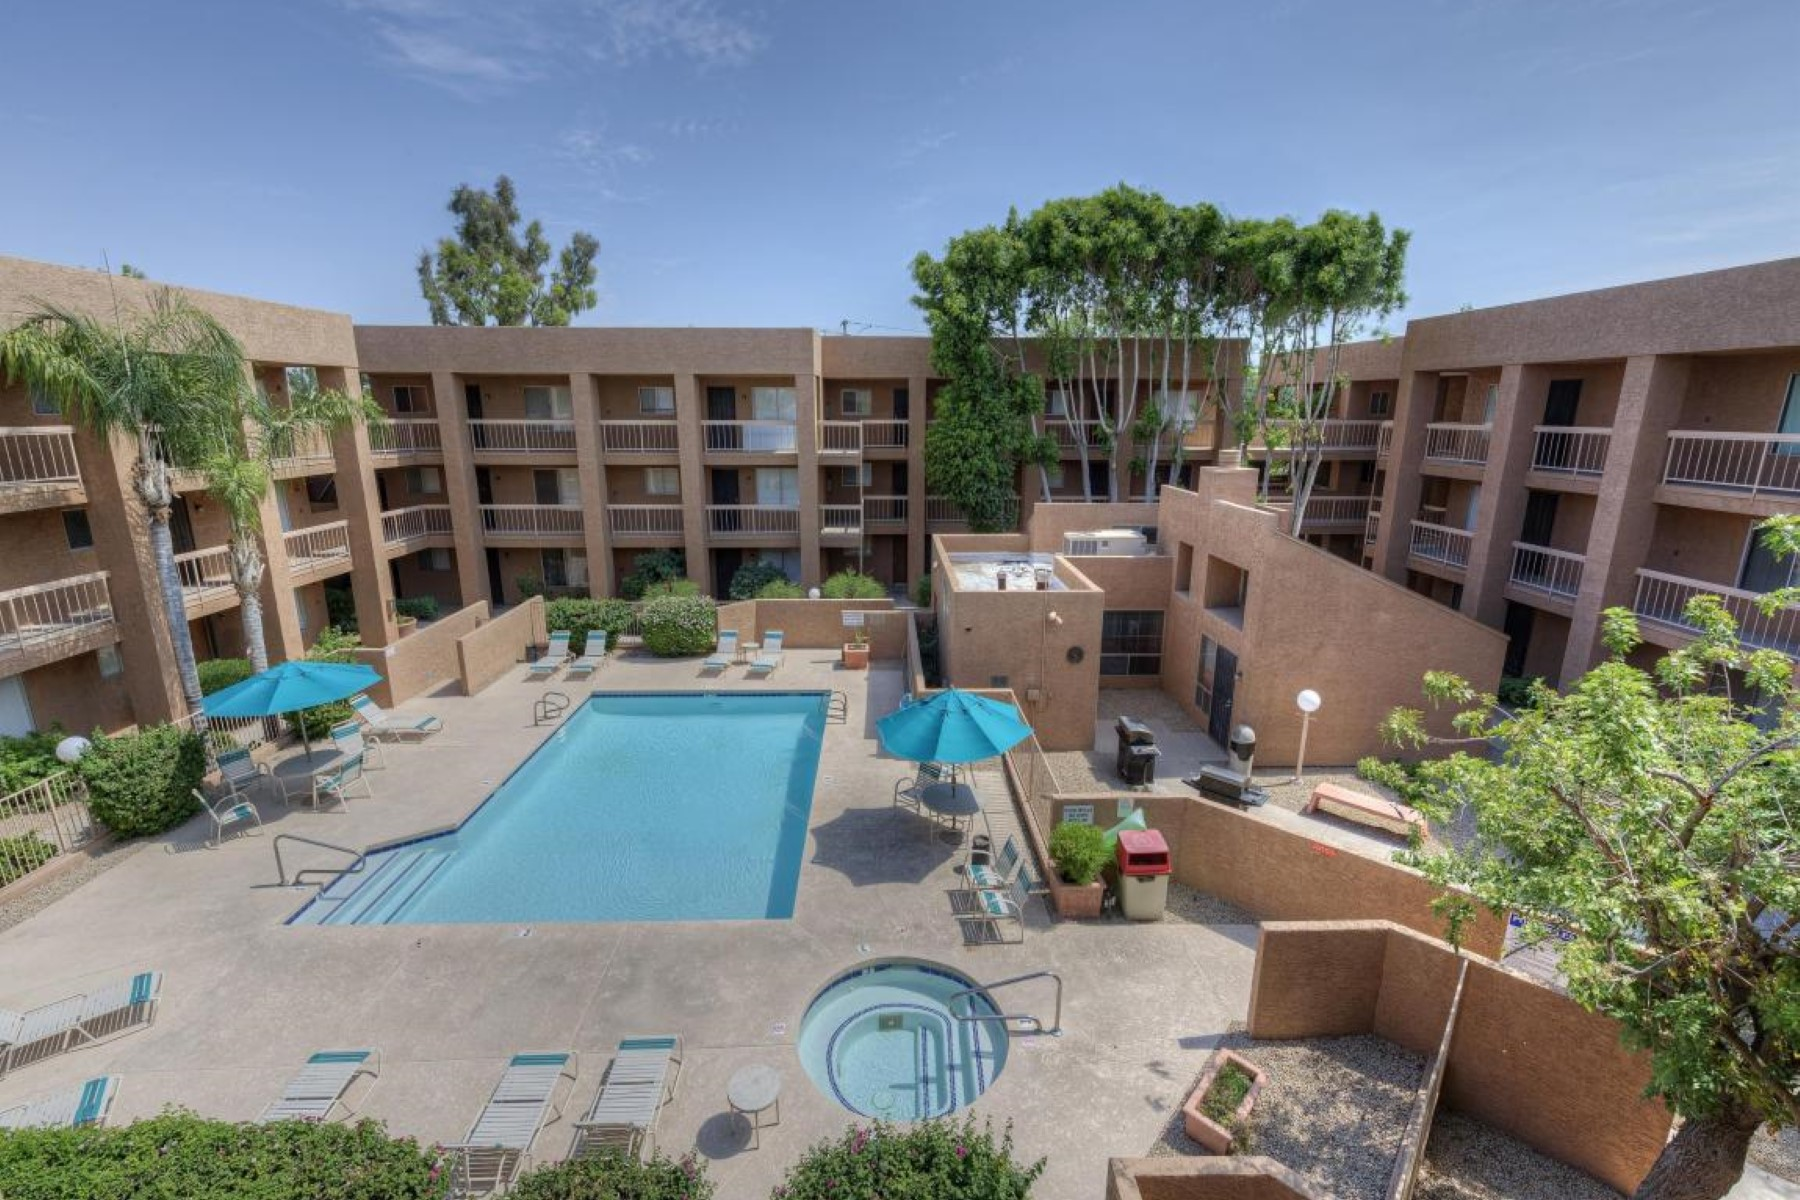 Apartment for Sale at Lovely remodeled home near Downtown Scottsdale. 7494 E Earll DR 304 Scottsdale, Arizona 85251 United States